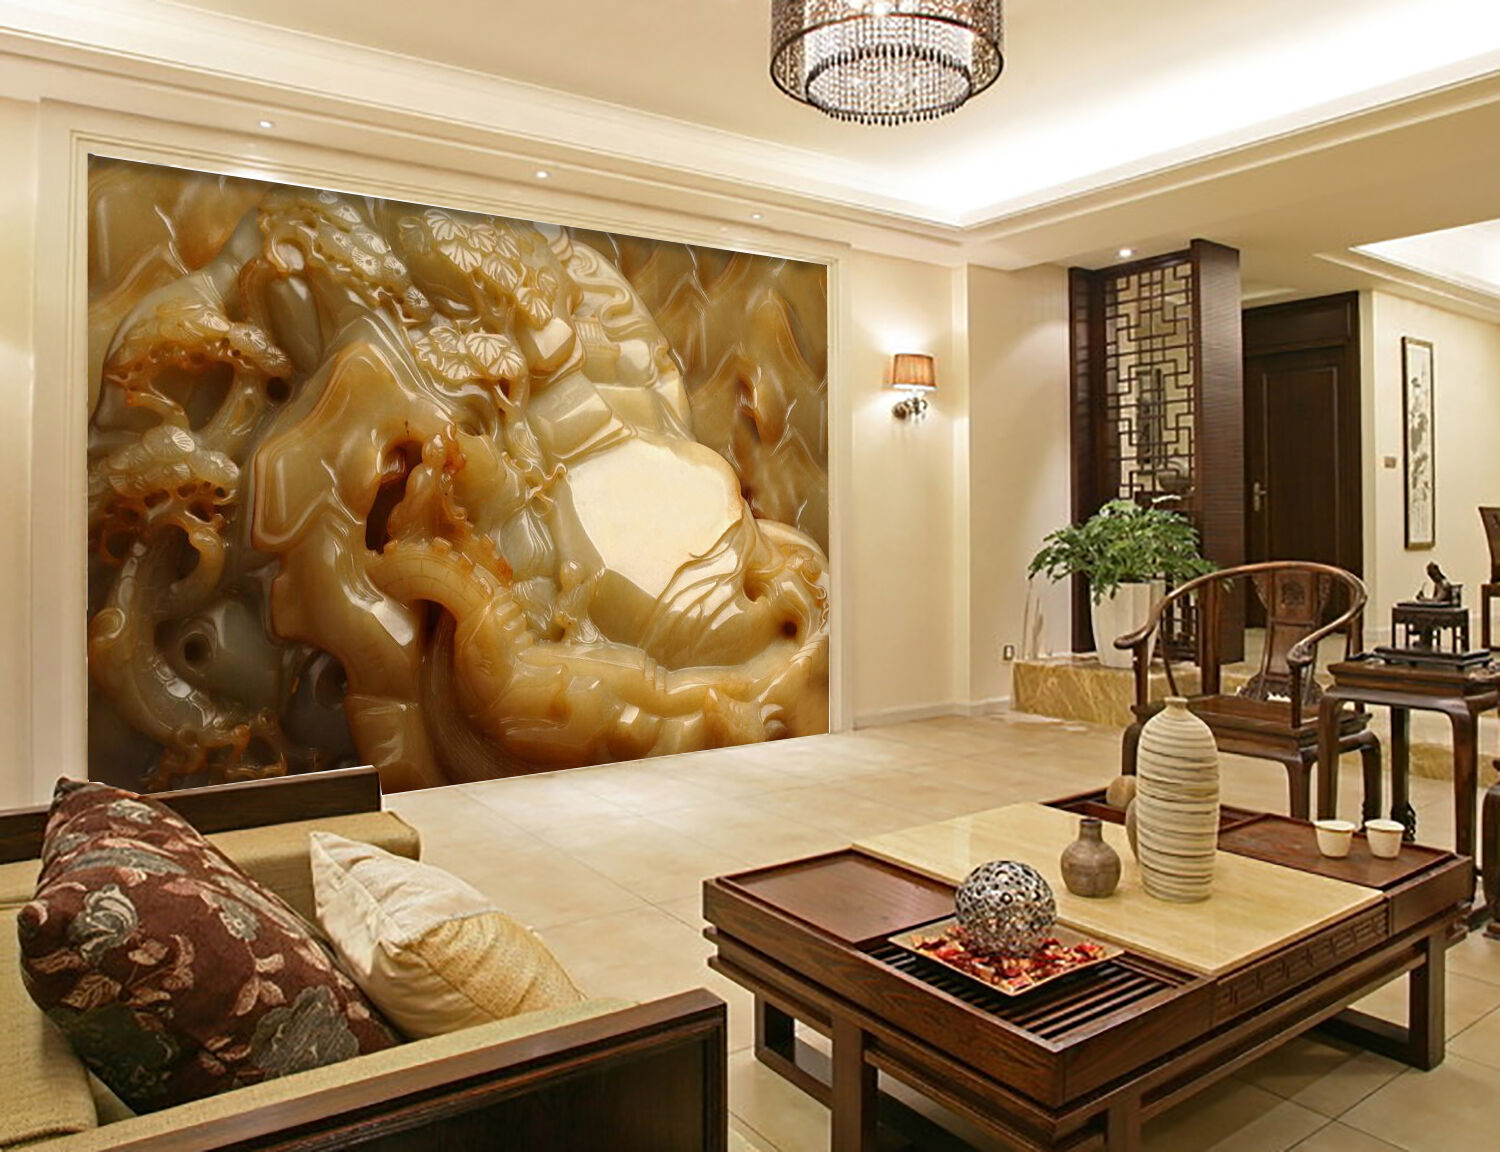 3D Jade stone carving Wall Paper wall Print Decal Wall Deco Indoor wall Mural